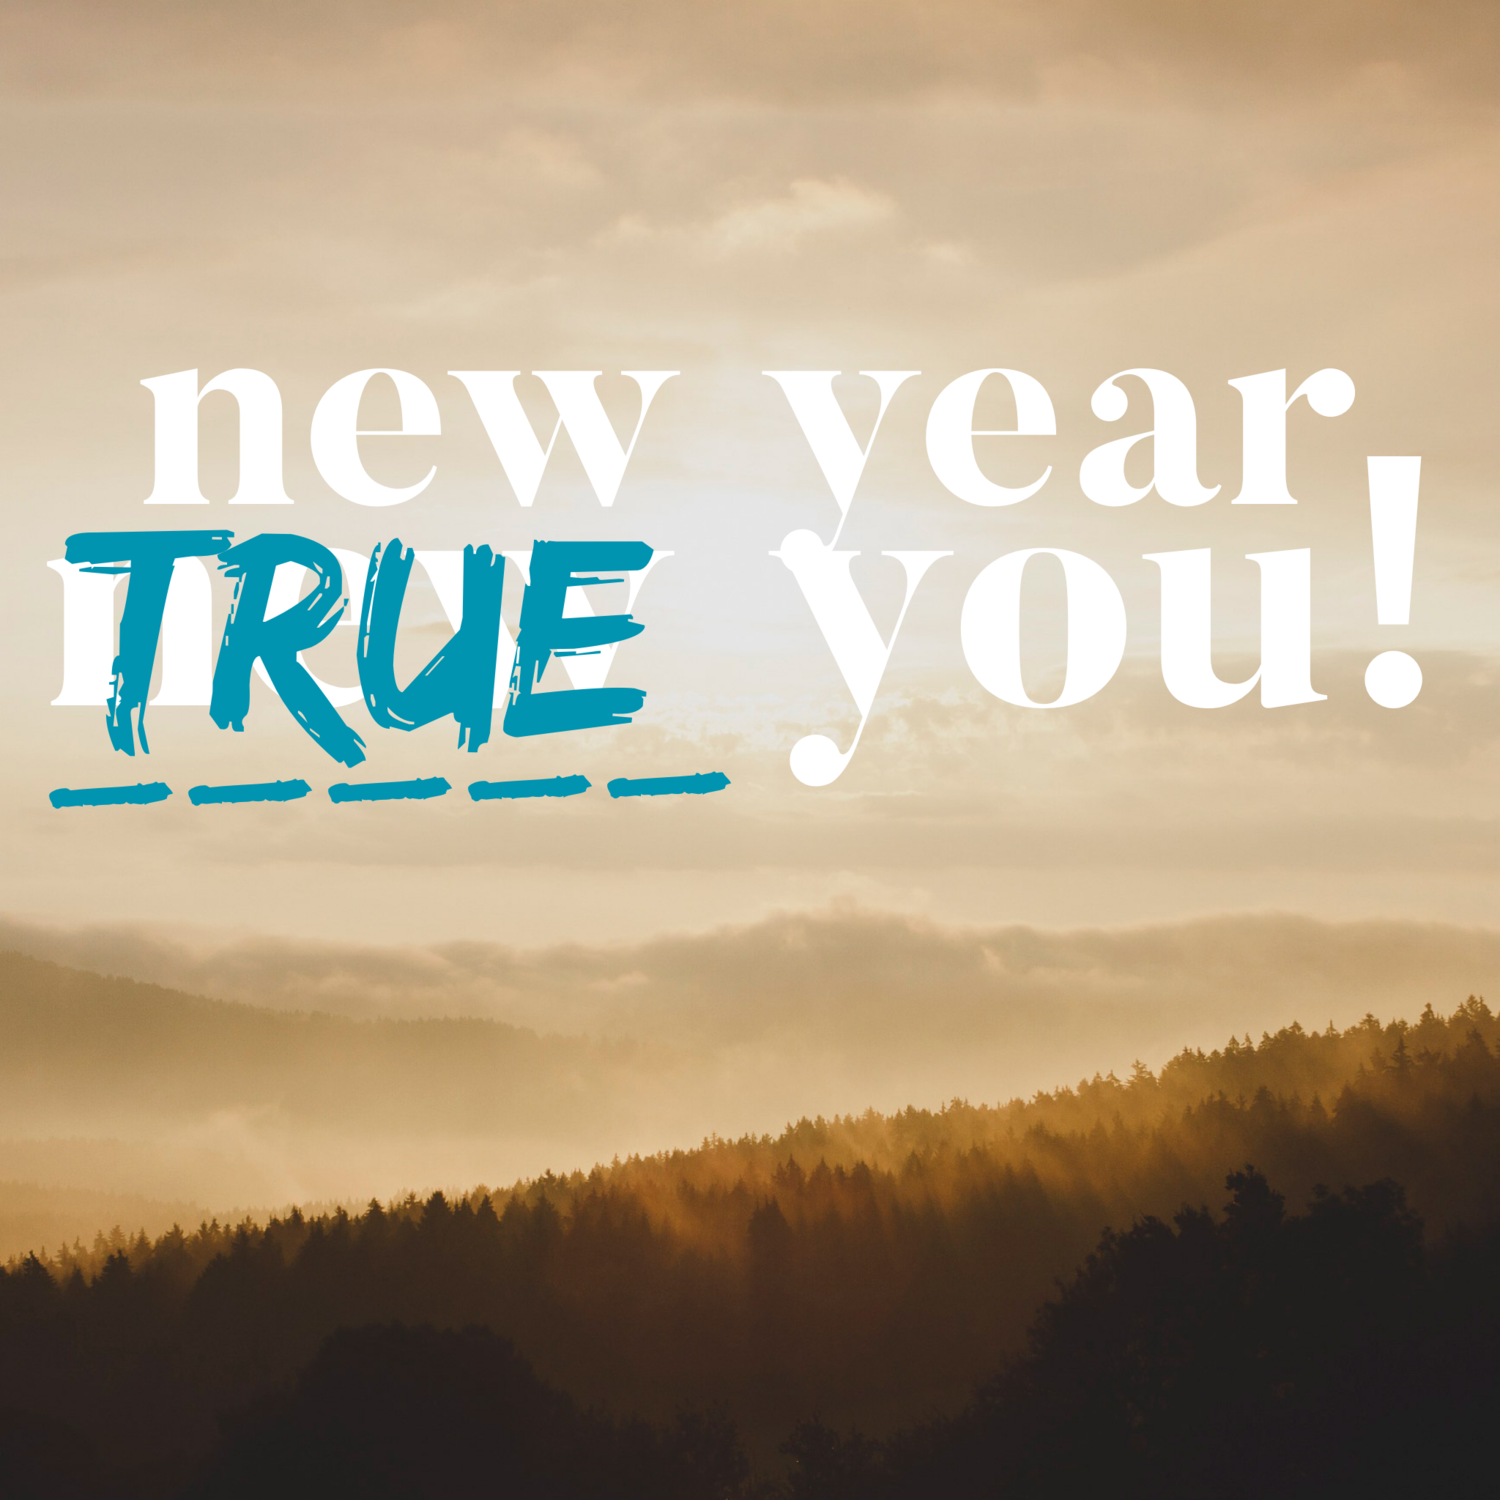 New Year, TRUE you!